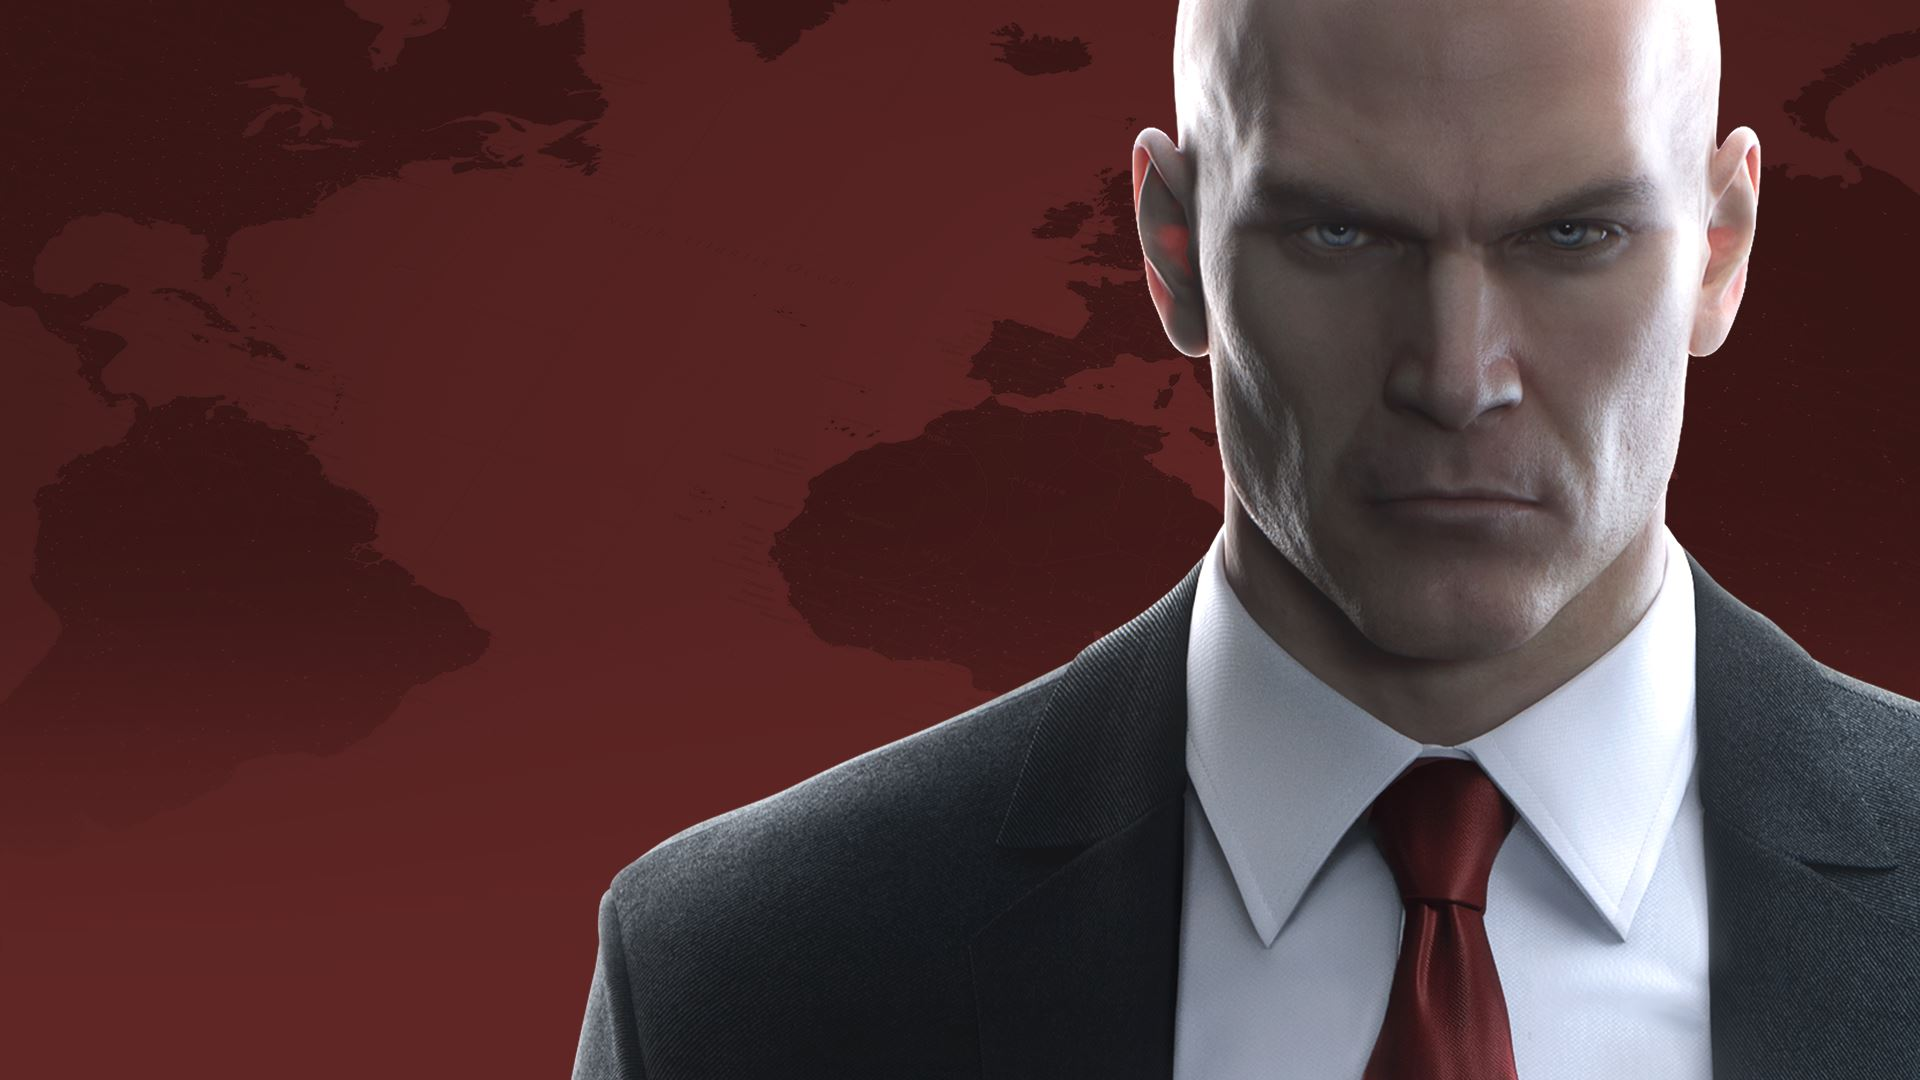 New Contracts And Elusive Target Coming To 'Hitman' This Month